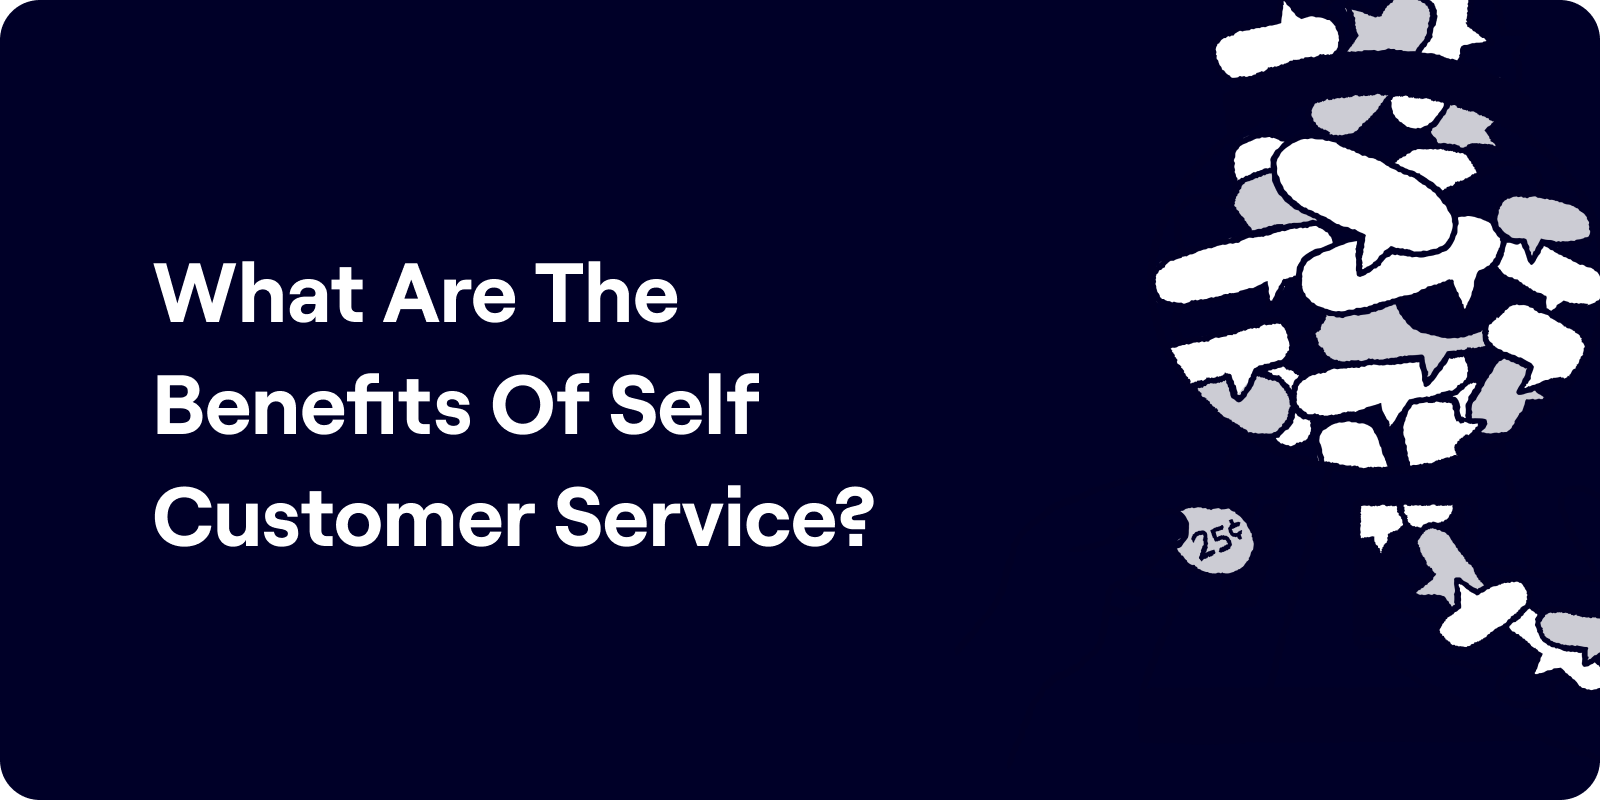 What Are The Benefits Of Self Customer Service Illustration